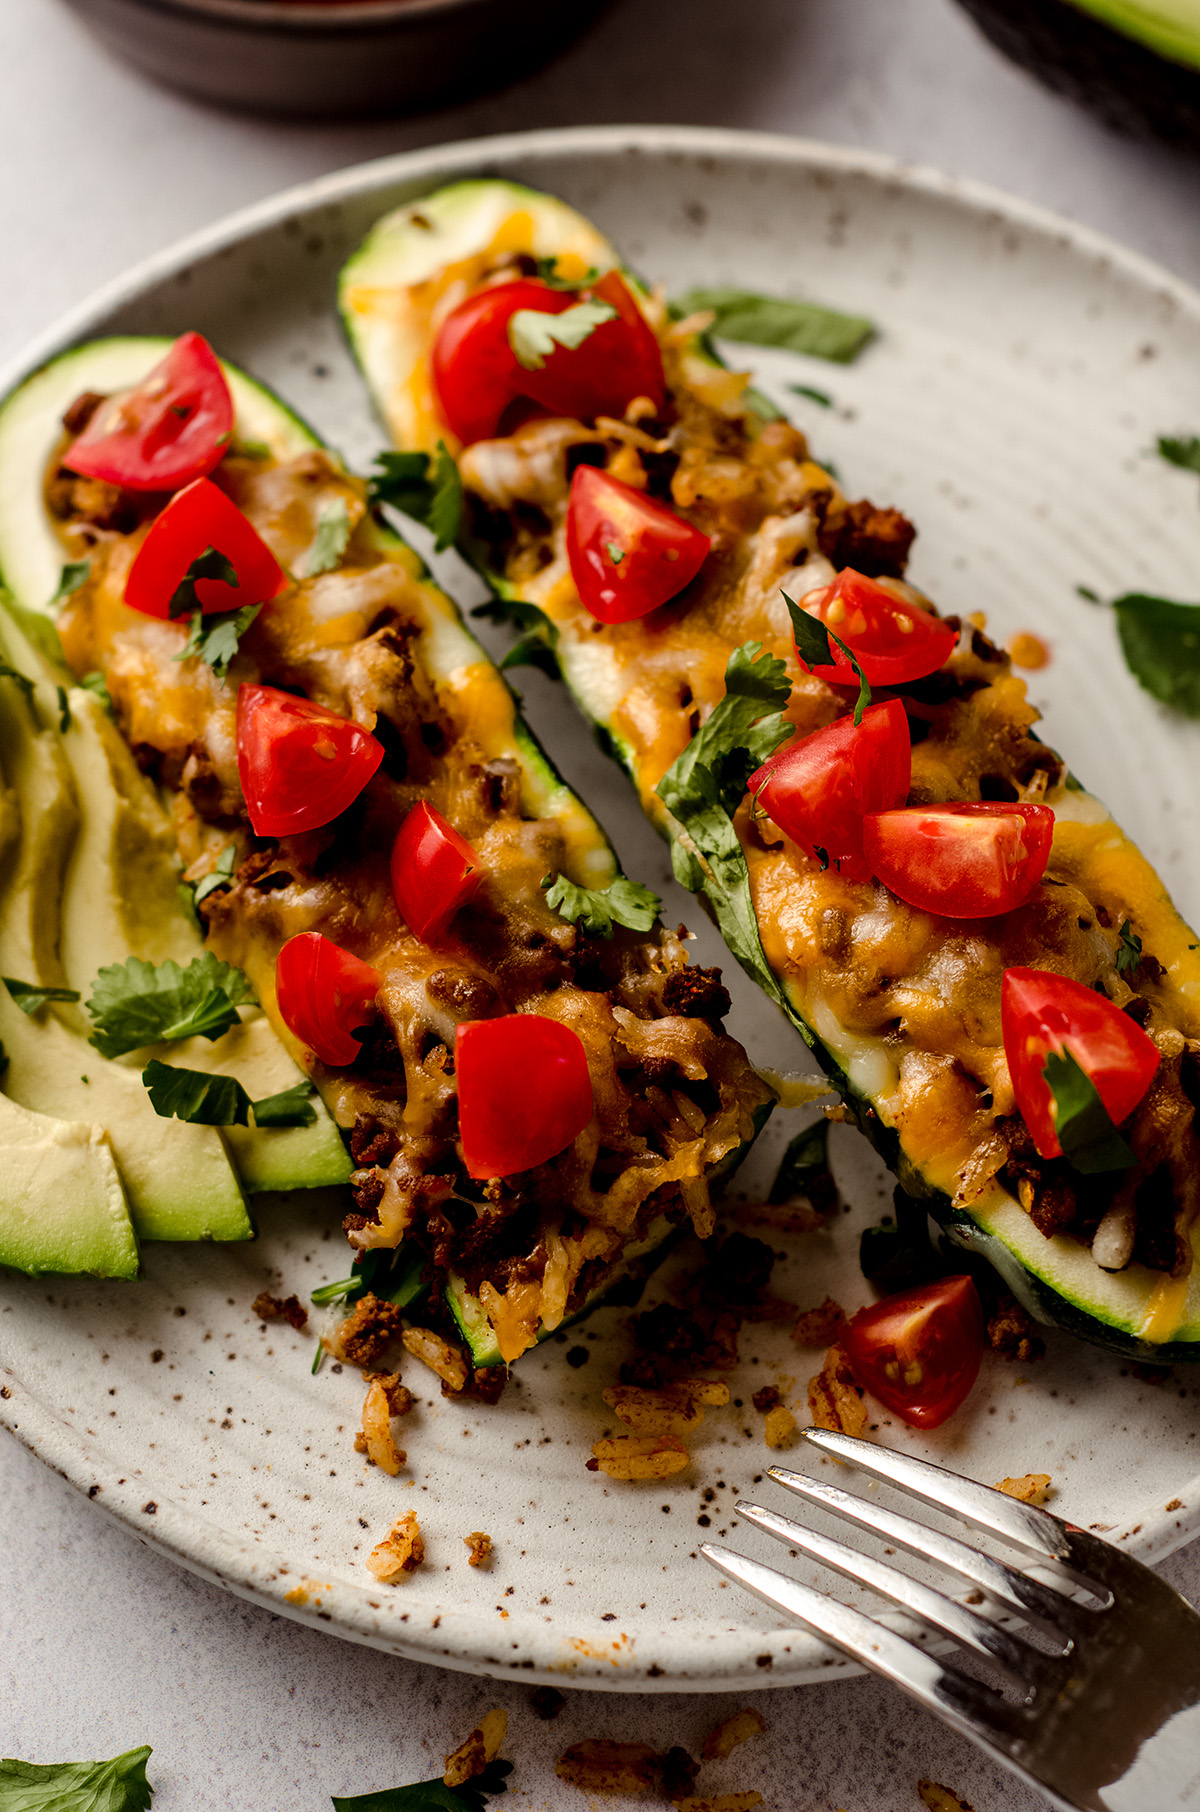 taco zucchini boats on a plate with a bite taken out of one